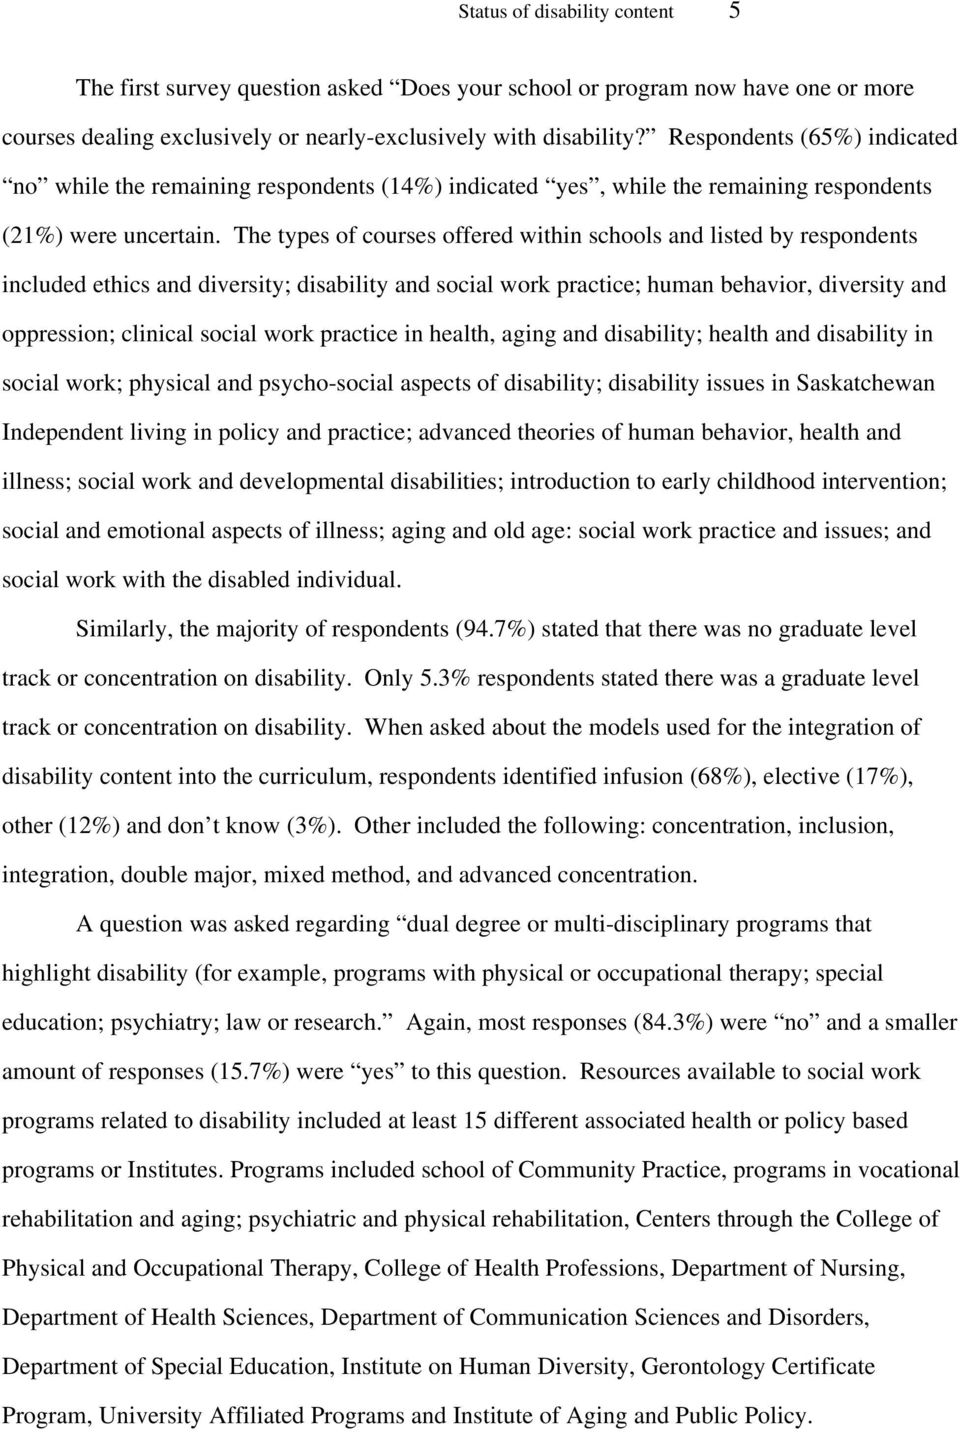 The types of courses offered within schools and listed by respondents included ethics and diversity; disability and social work practice; human behavior, diversity and oppression; clinical social